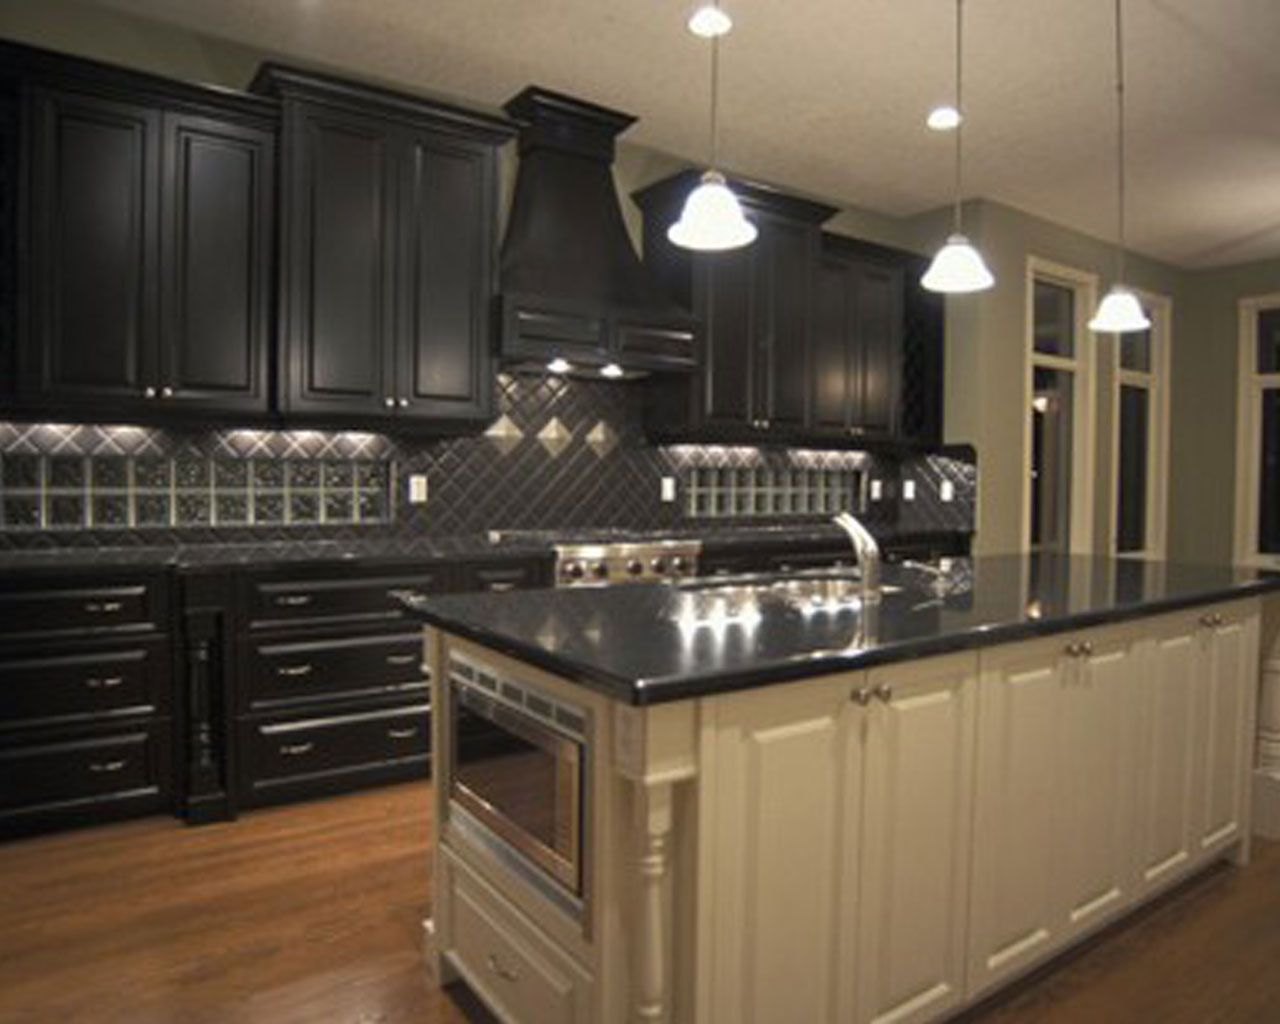 Finest design black kitchen cabinets wallpapers new for Small kitchen black cabinets